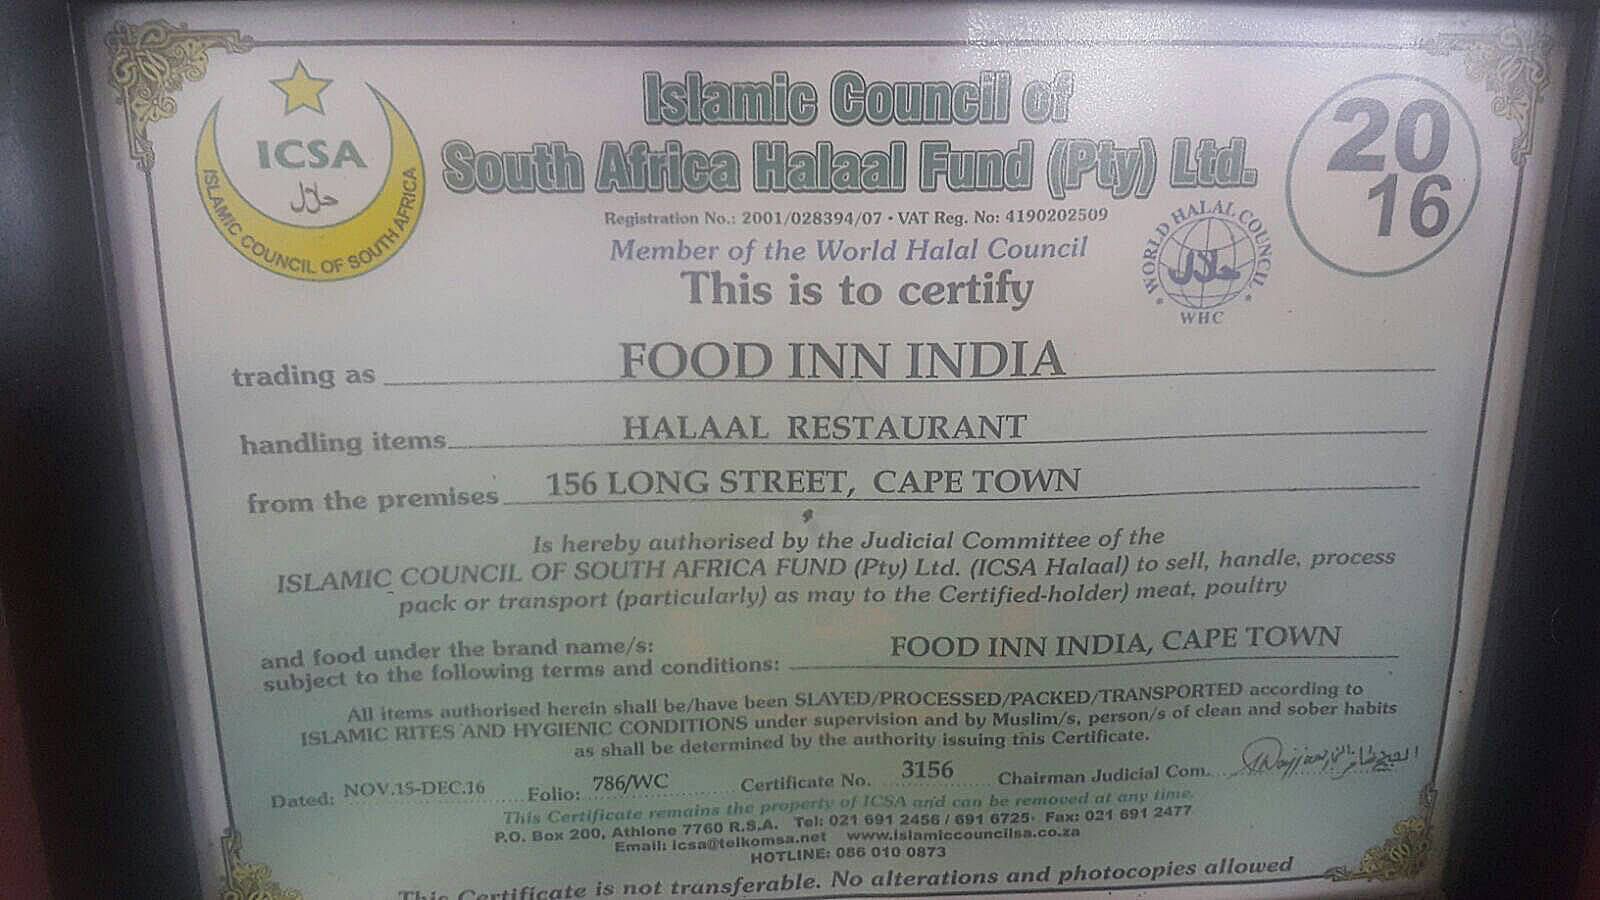 Food Inn Certificate